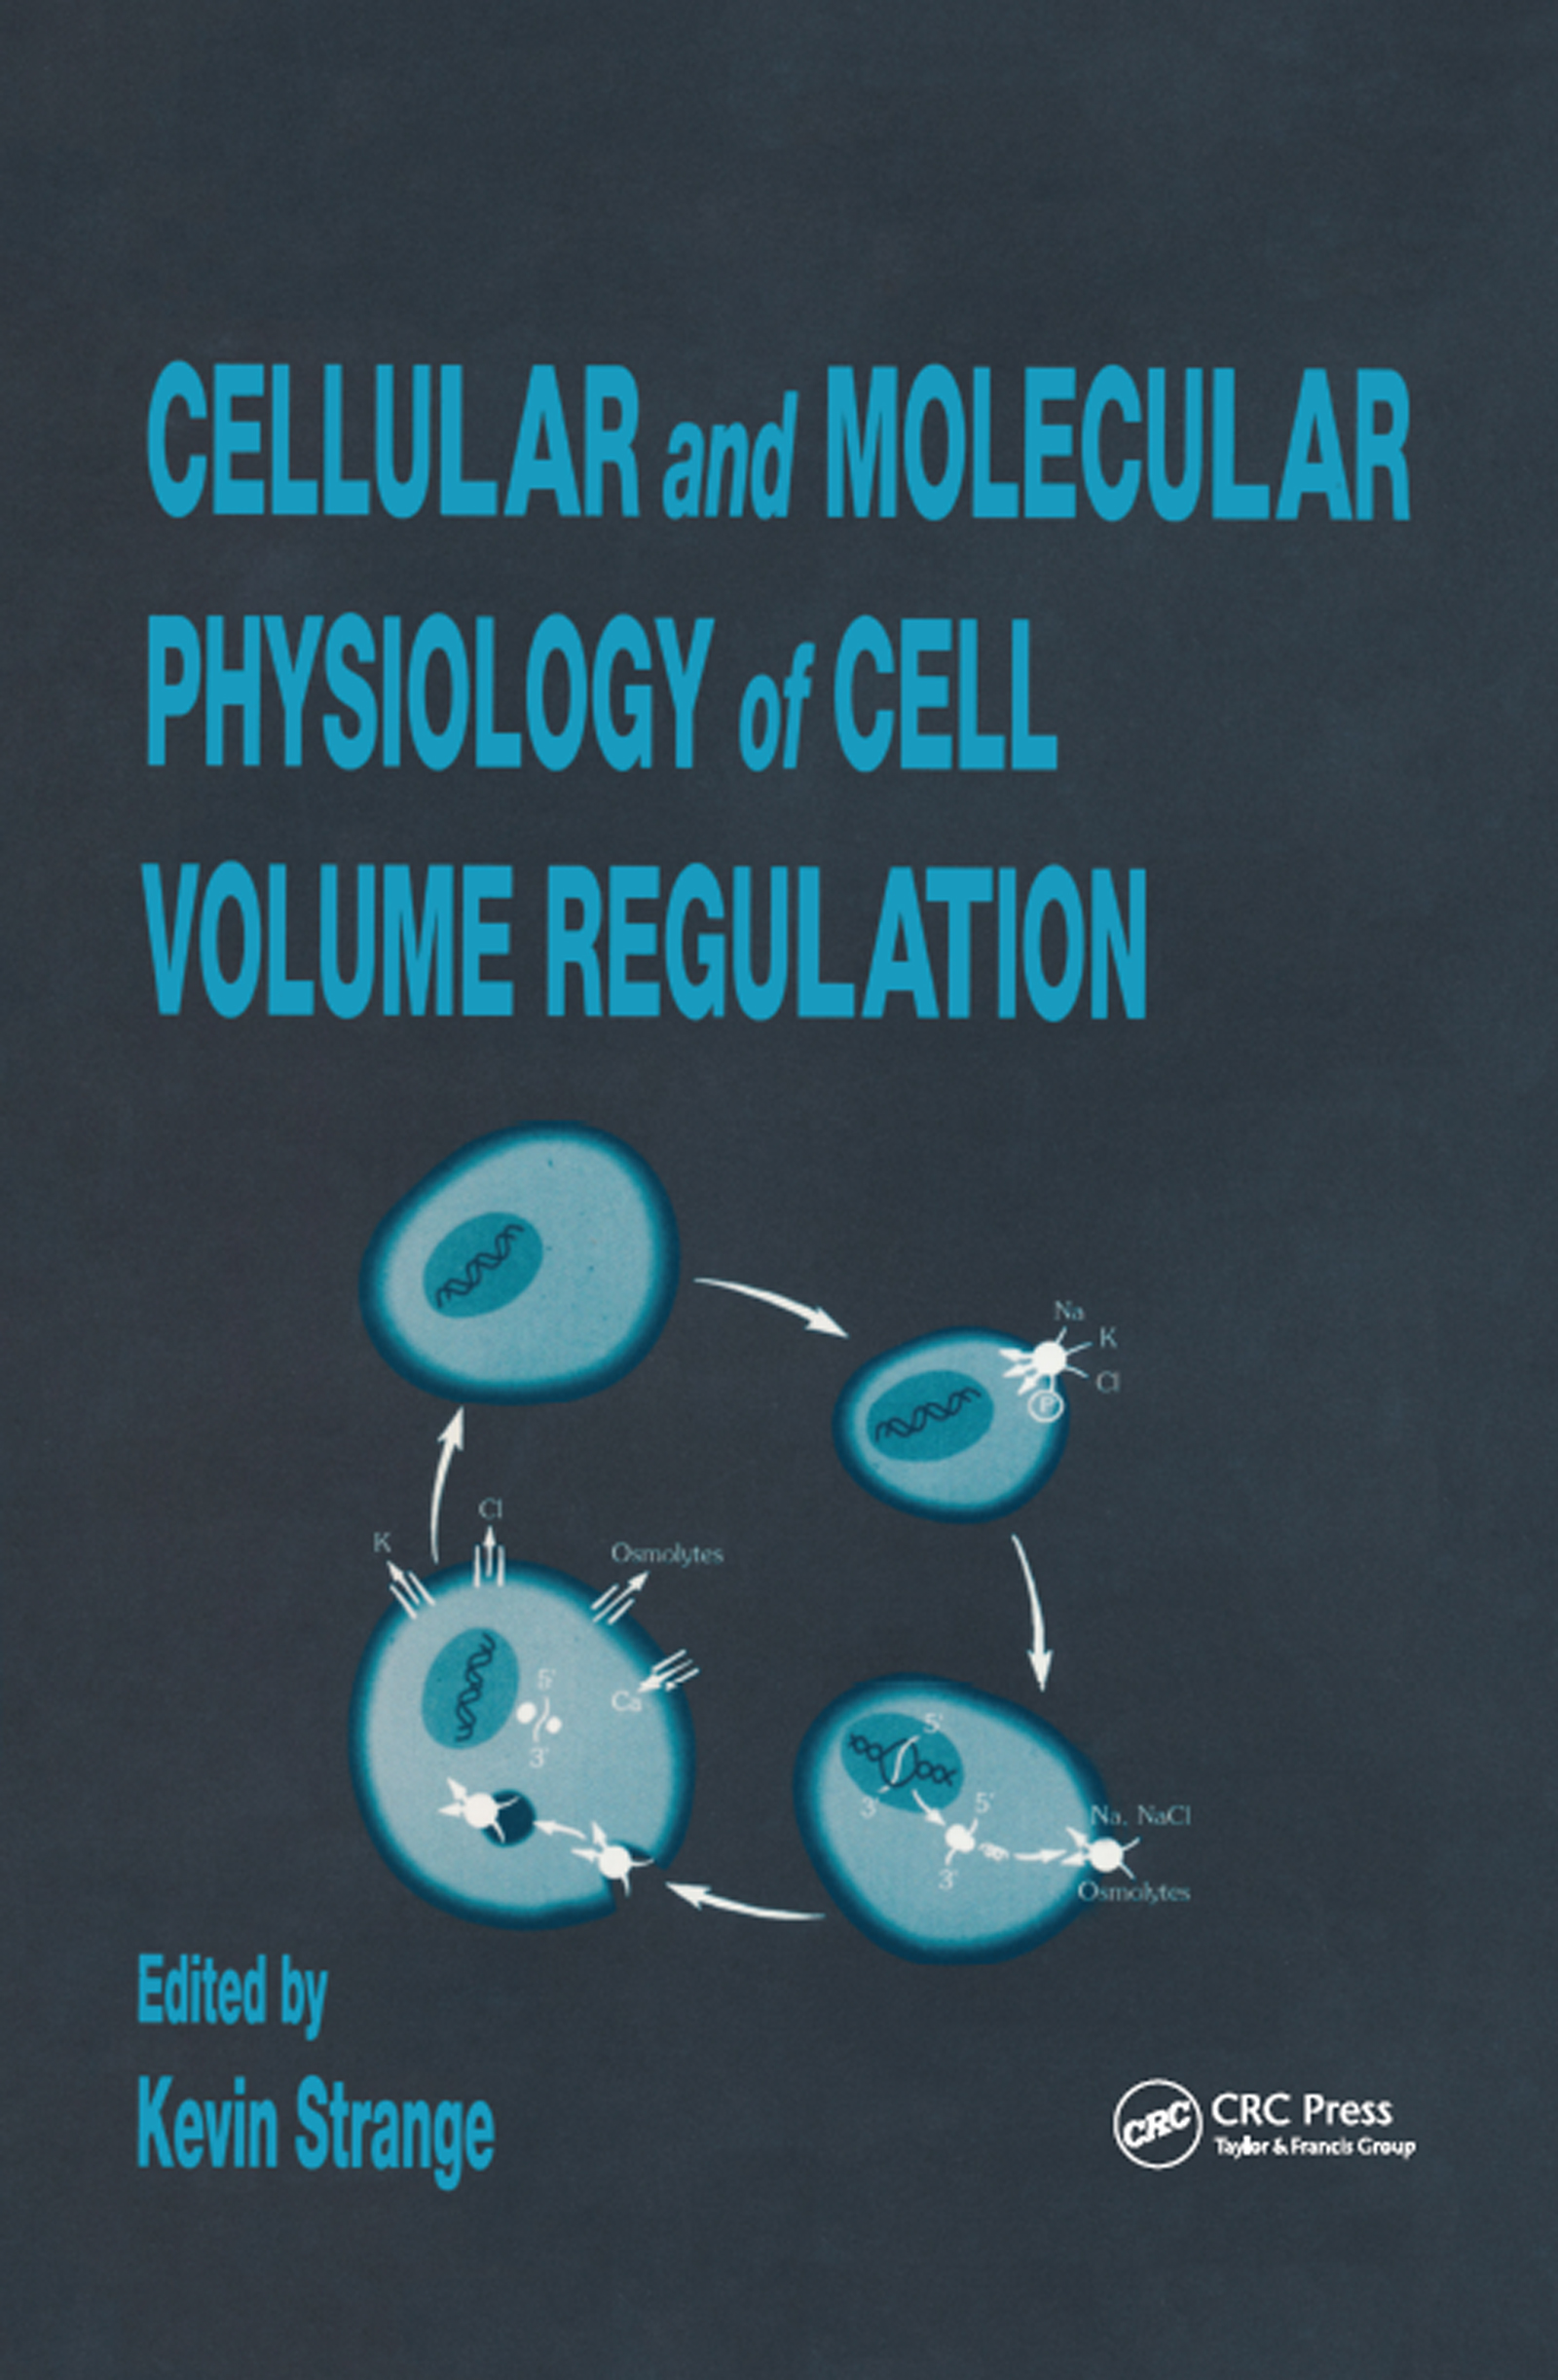 Cellular and Molecular Physiology of Cell Volume Regulation